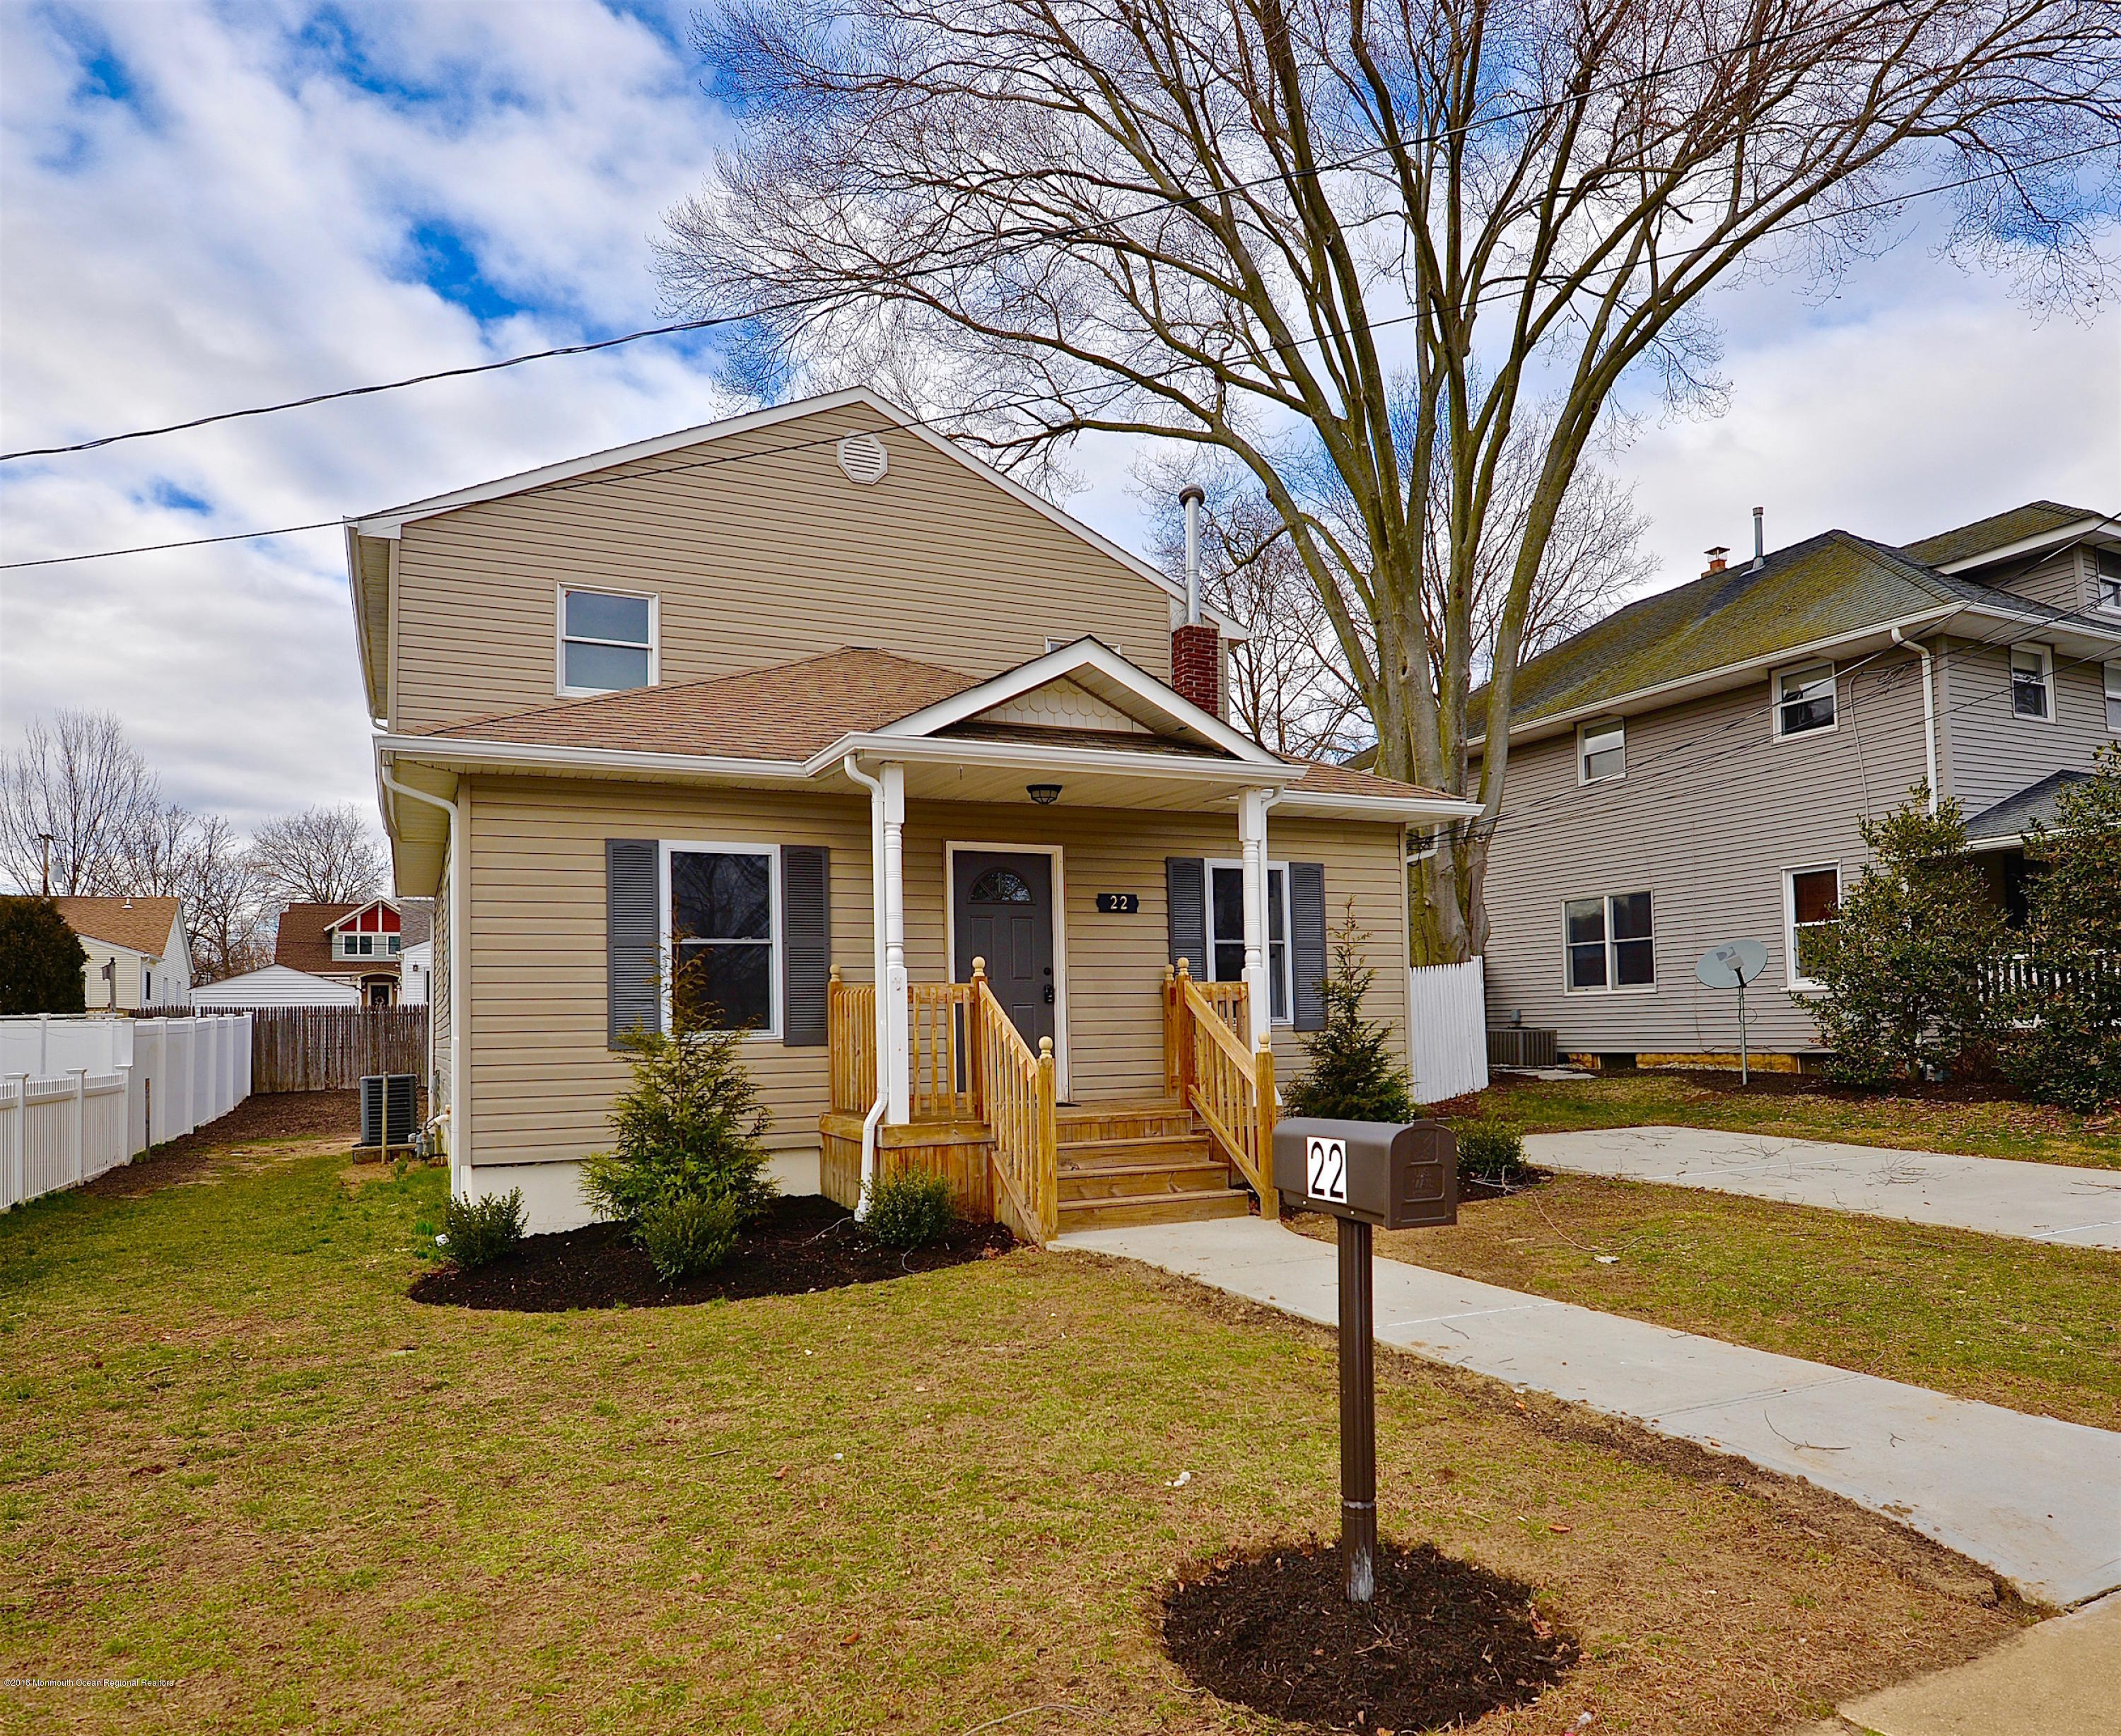 22 CARPENTER STREET, RED BANK, NJ 07701